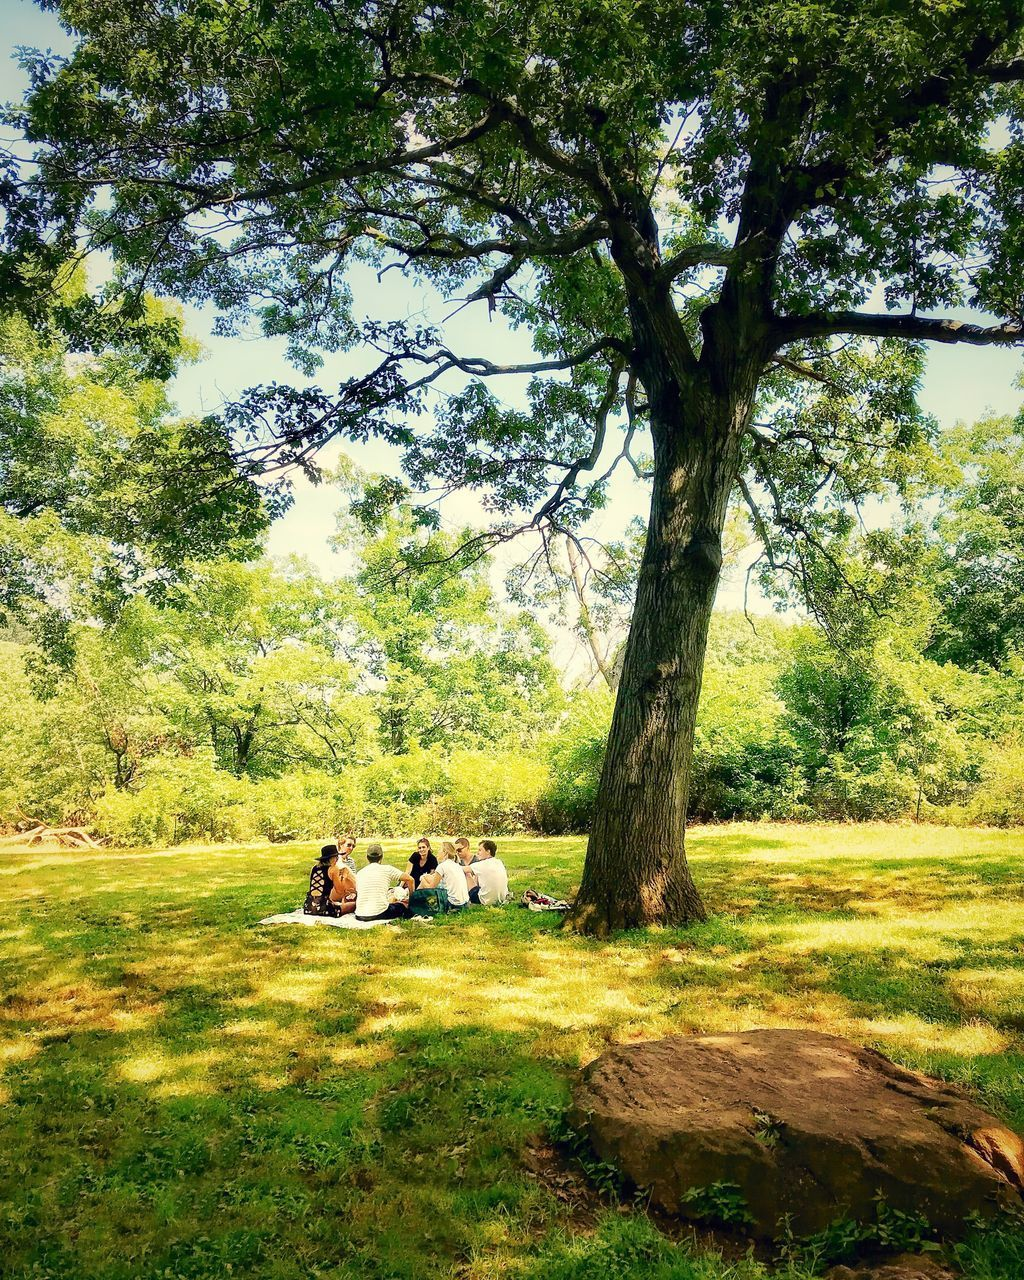 tree, plant, land, grass, field, nature, green color, day, real people, growth, sitting, men, sunlight, beauty in nature, tranquility, outdoors, leisure activity, trunk, togetherness, park, couple - relationship